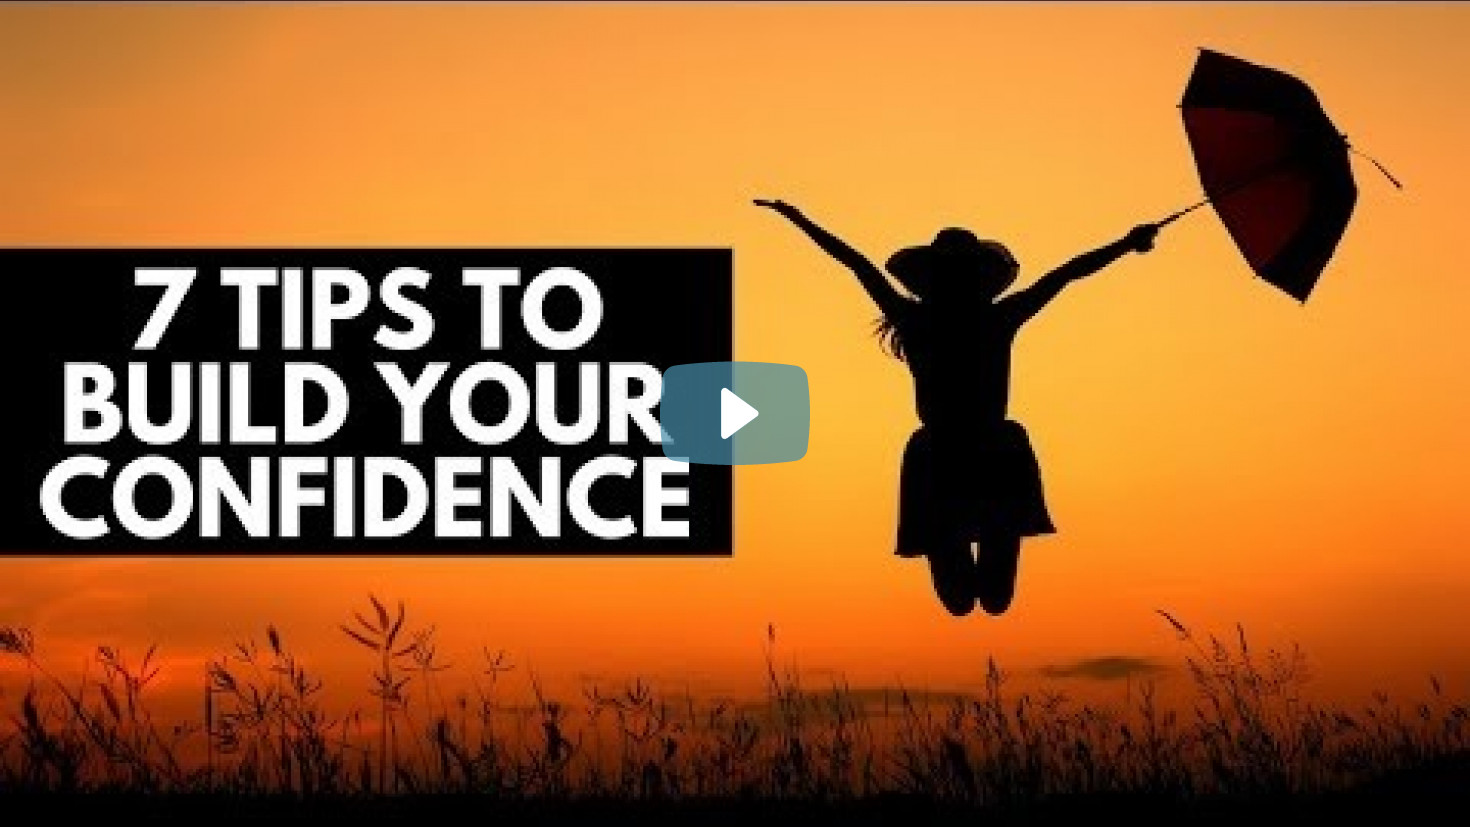 7 Tips To Build Your Confidence